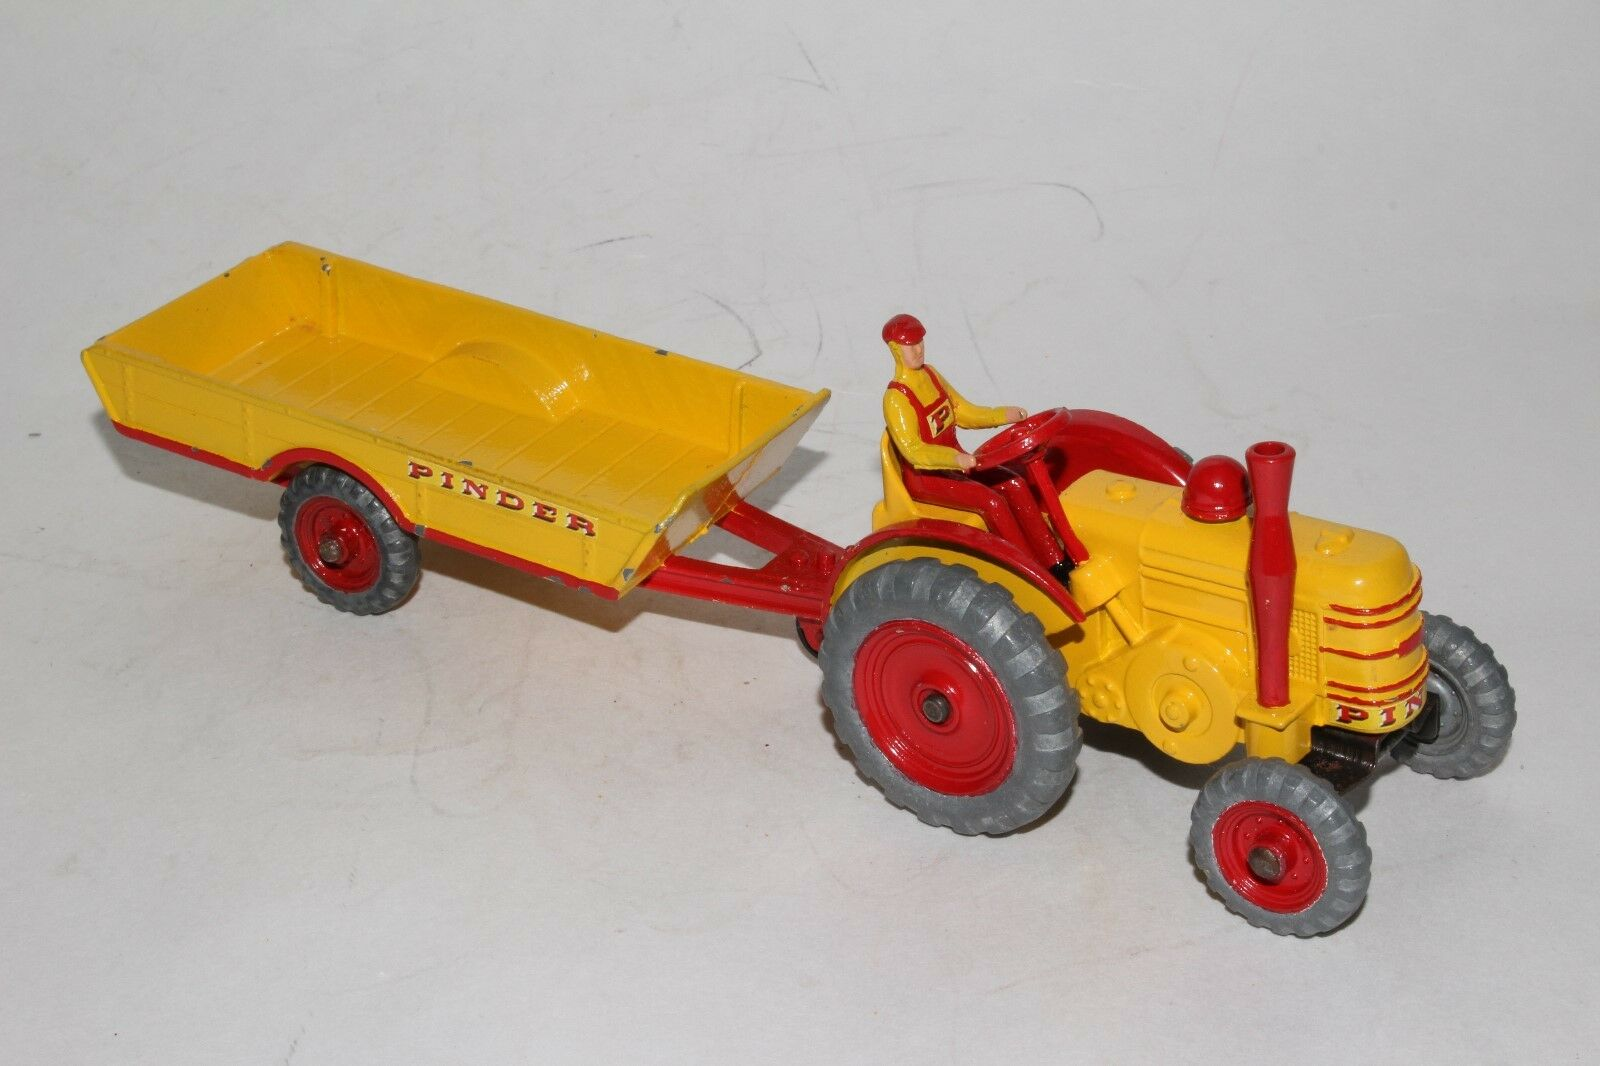 Dinky Personnalisé, Pinder Cirque 594ms 301 Marshall Champs Tracteur avec Wagon